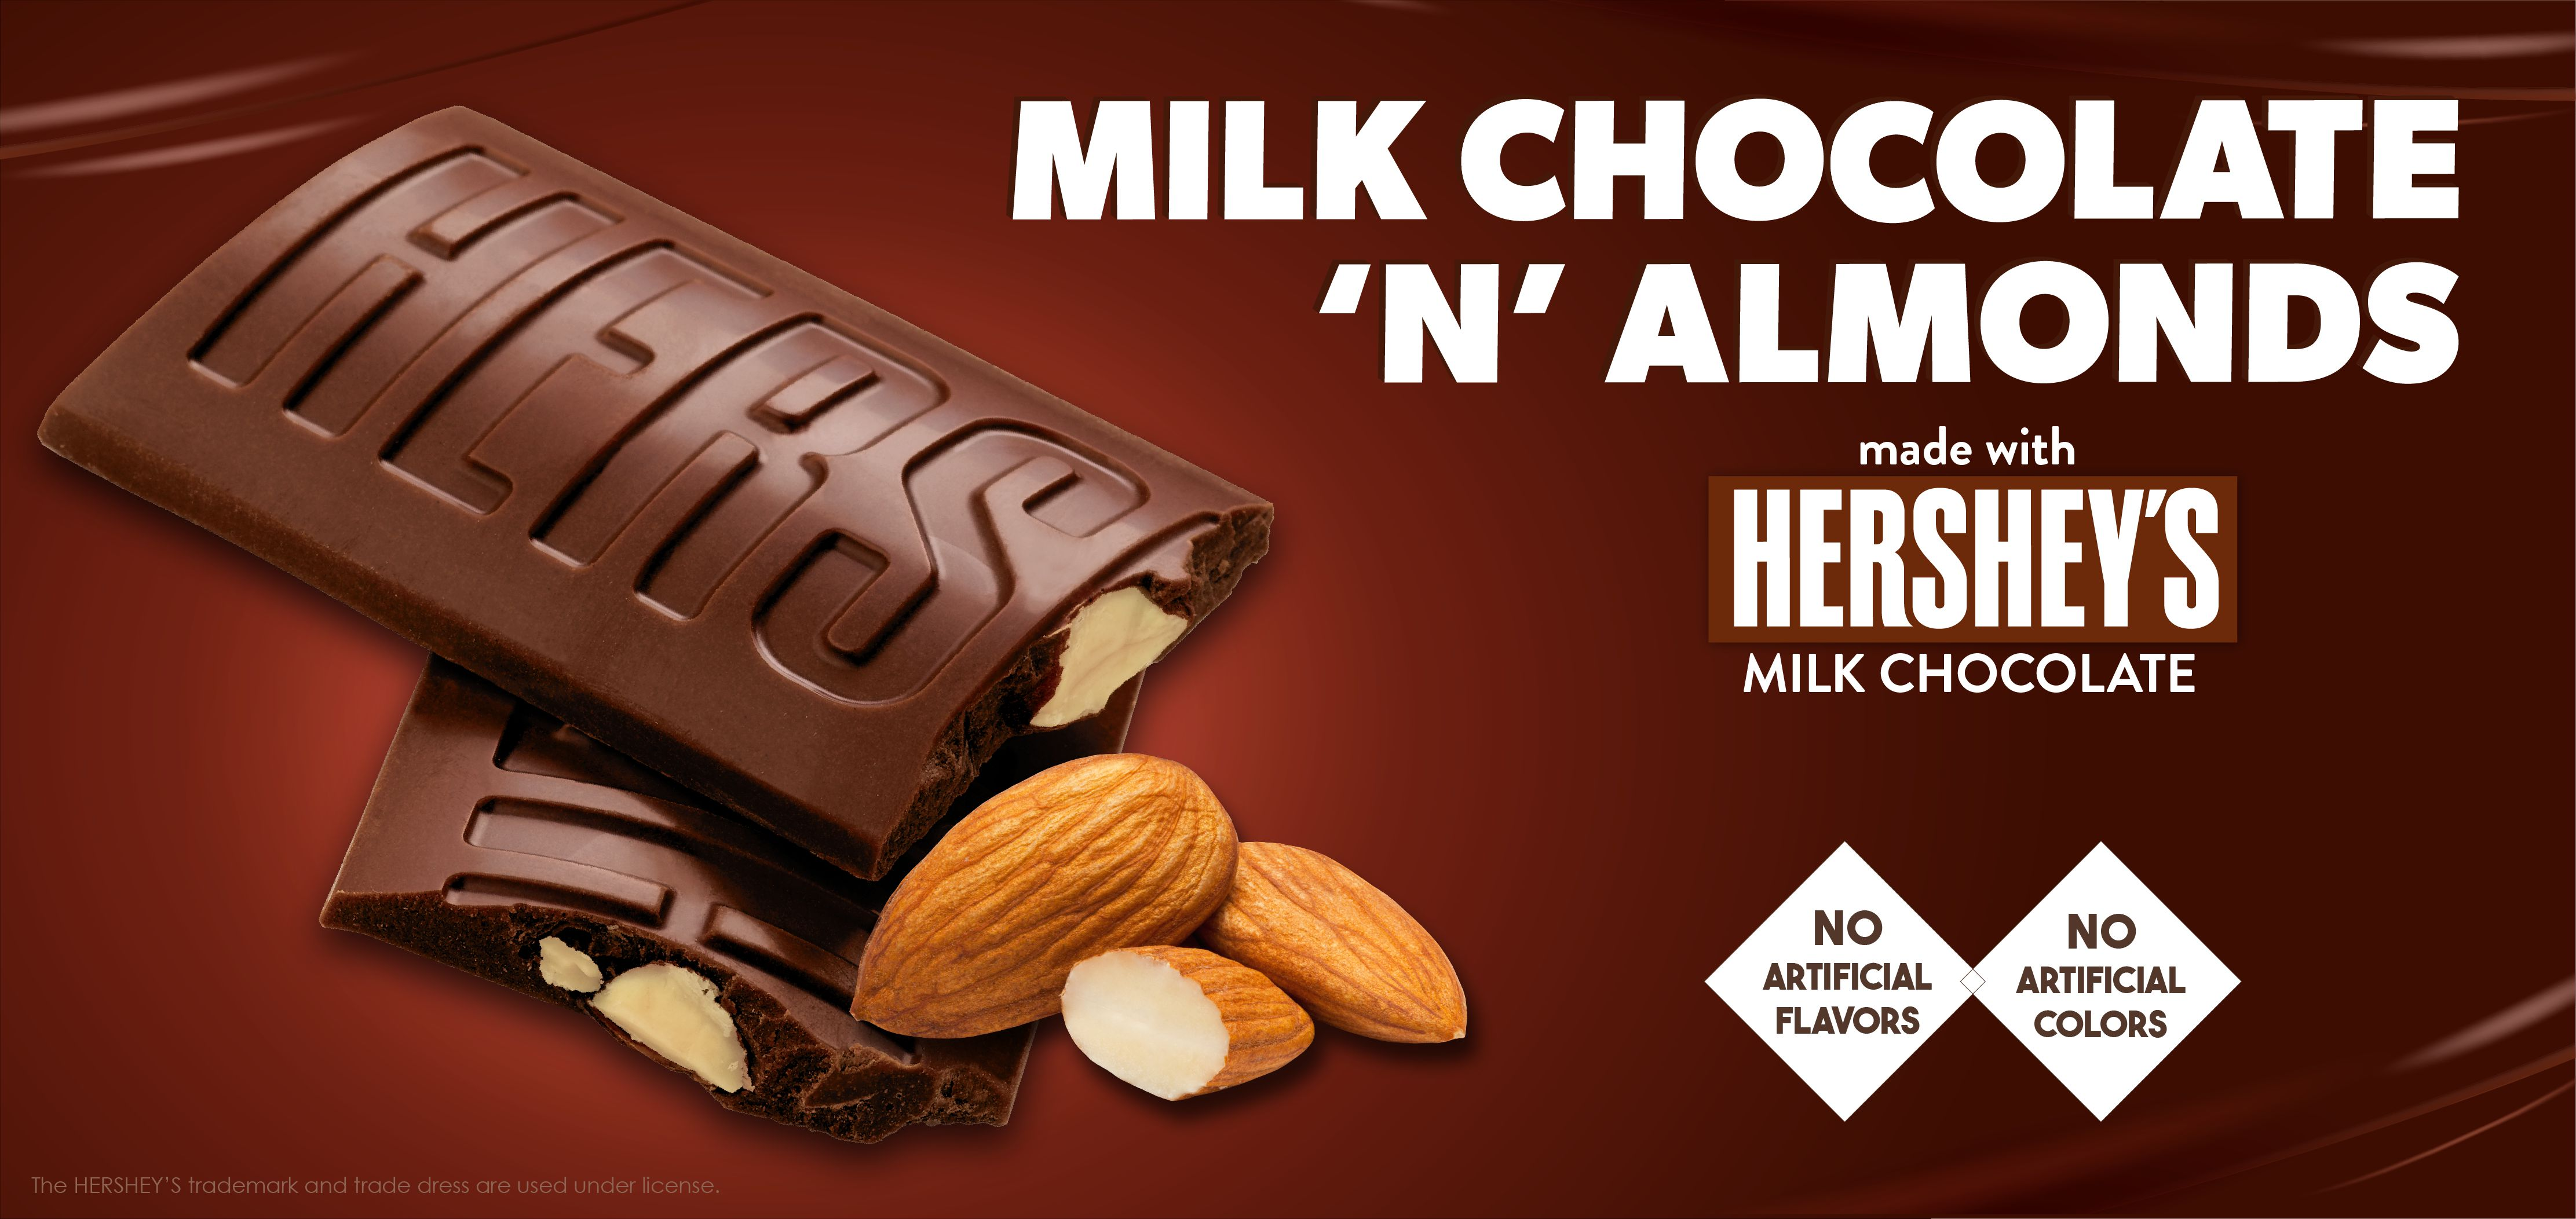 milk chocolate 'n' almonds made with hershey's® chocolate label image